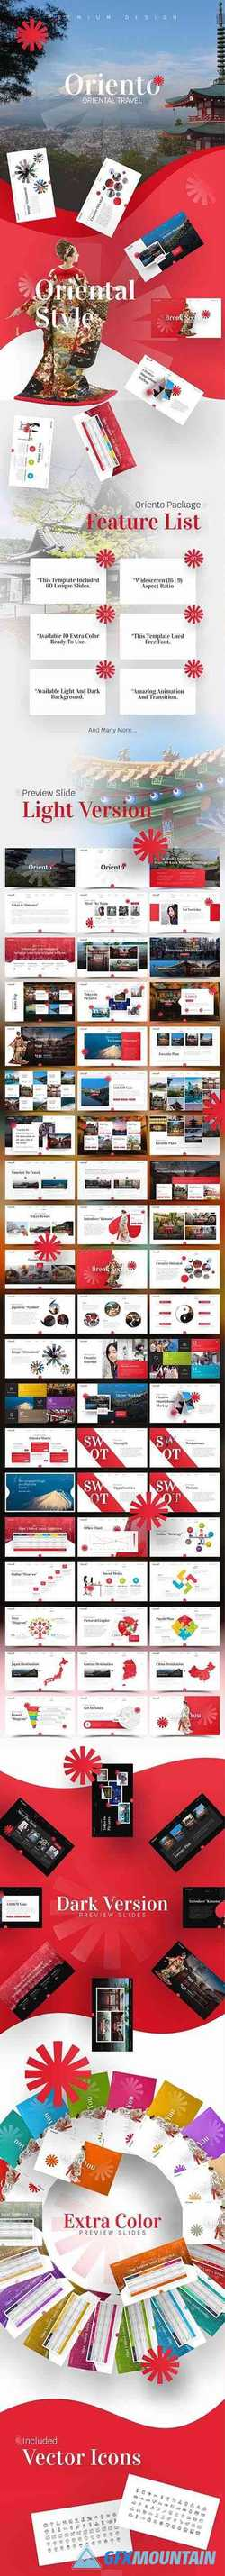 Oriento Tourism PowerPoint Template 23236367